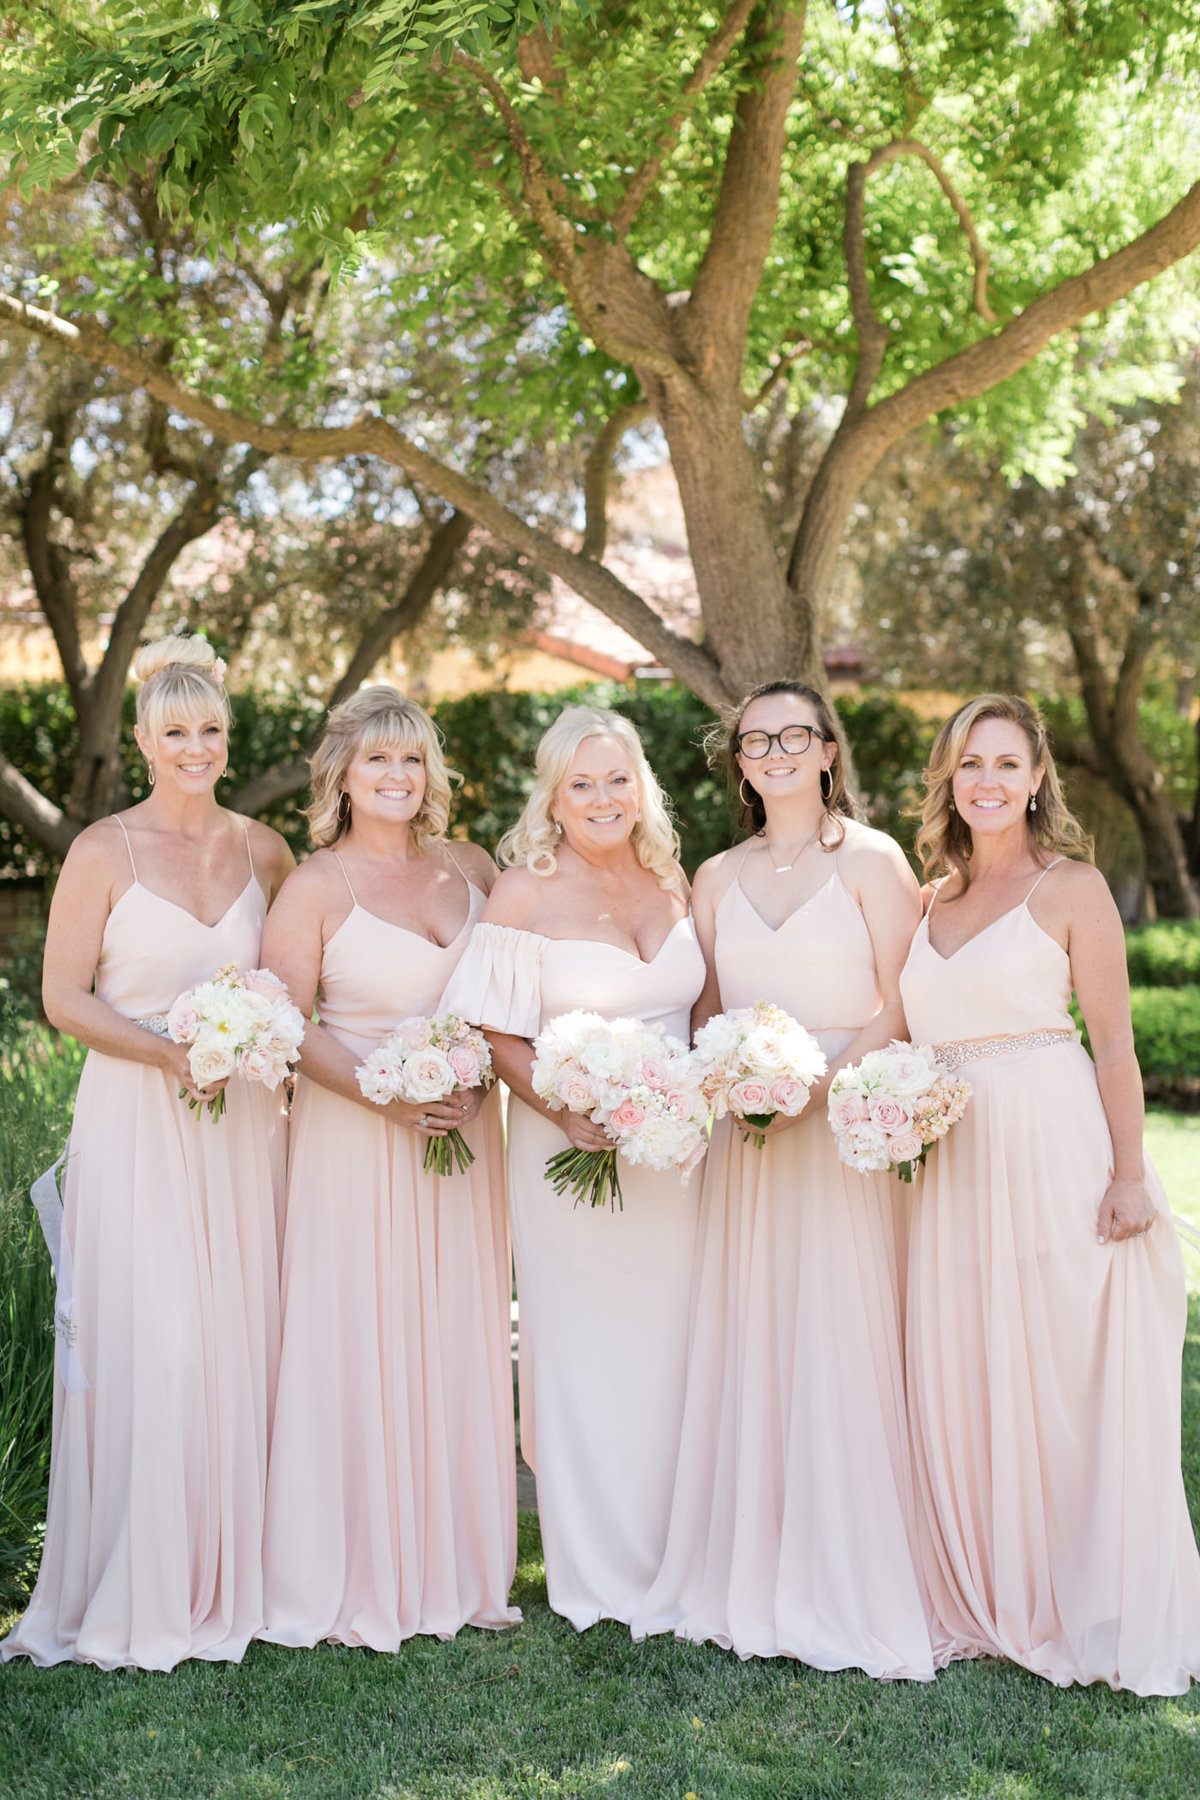 cali-paso-winery-weddingphotographer-tayler-enerle0002